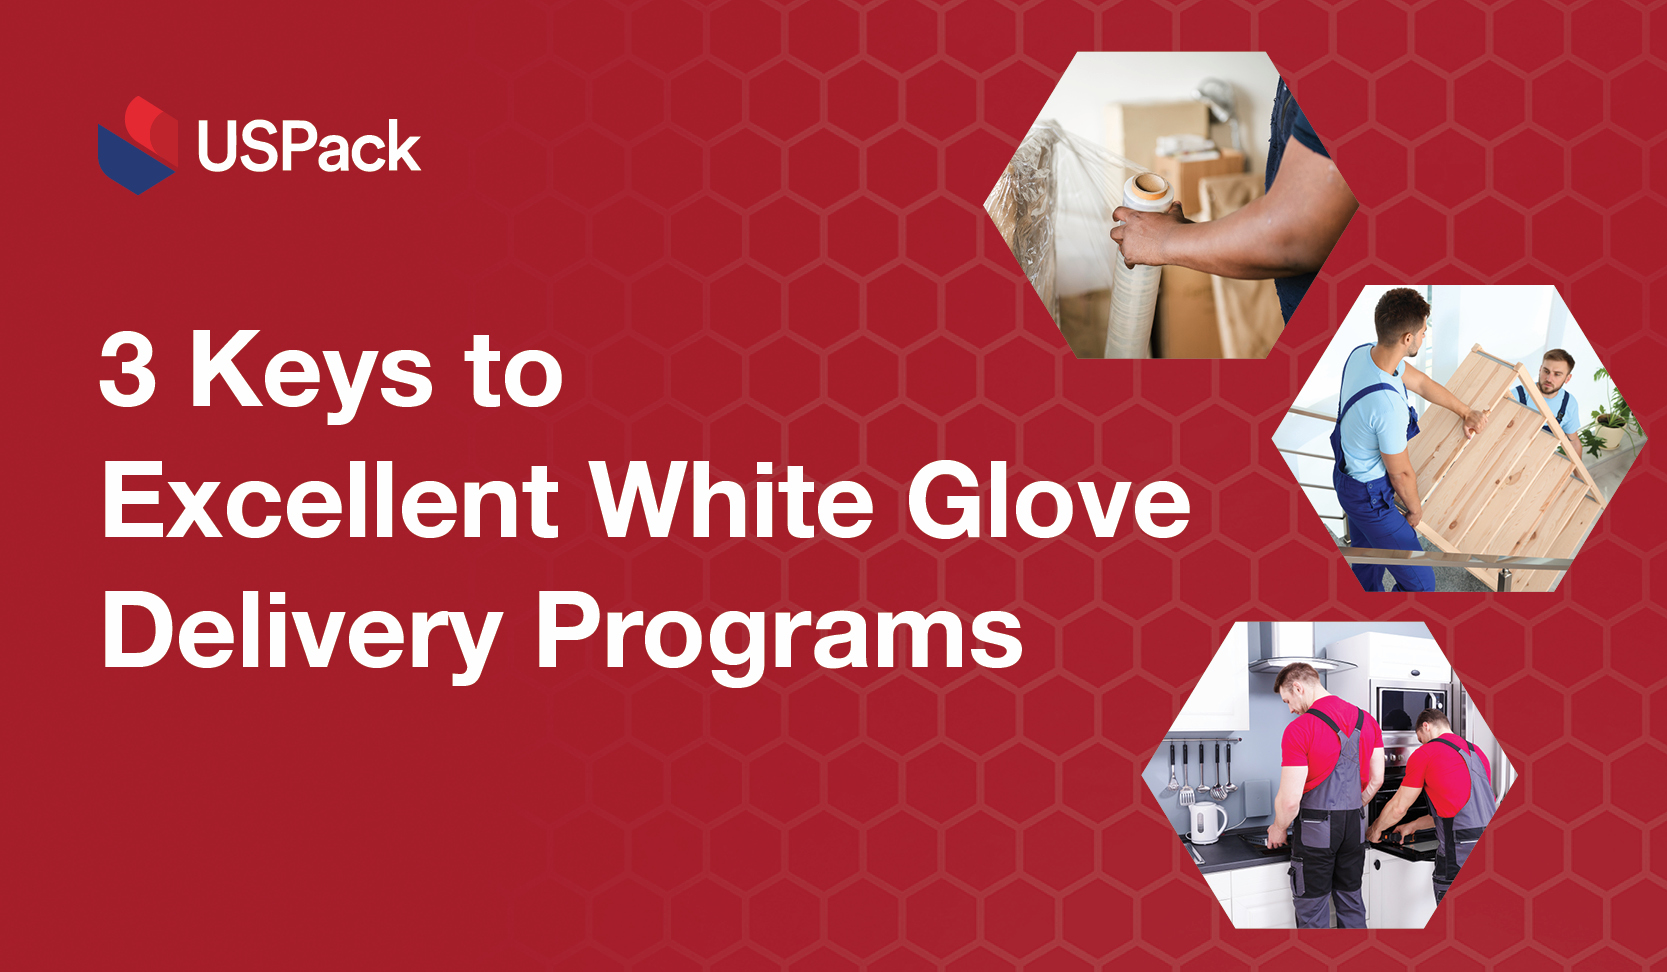 3 Keys to Excellent White Glove Delivery Programs